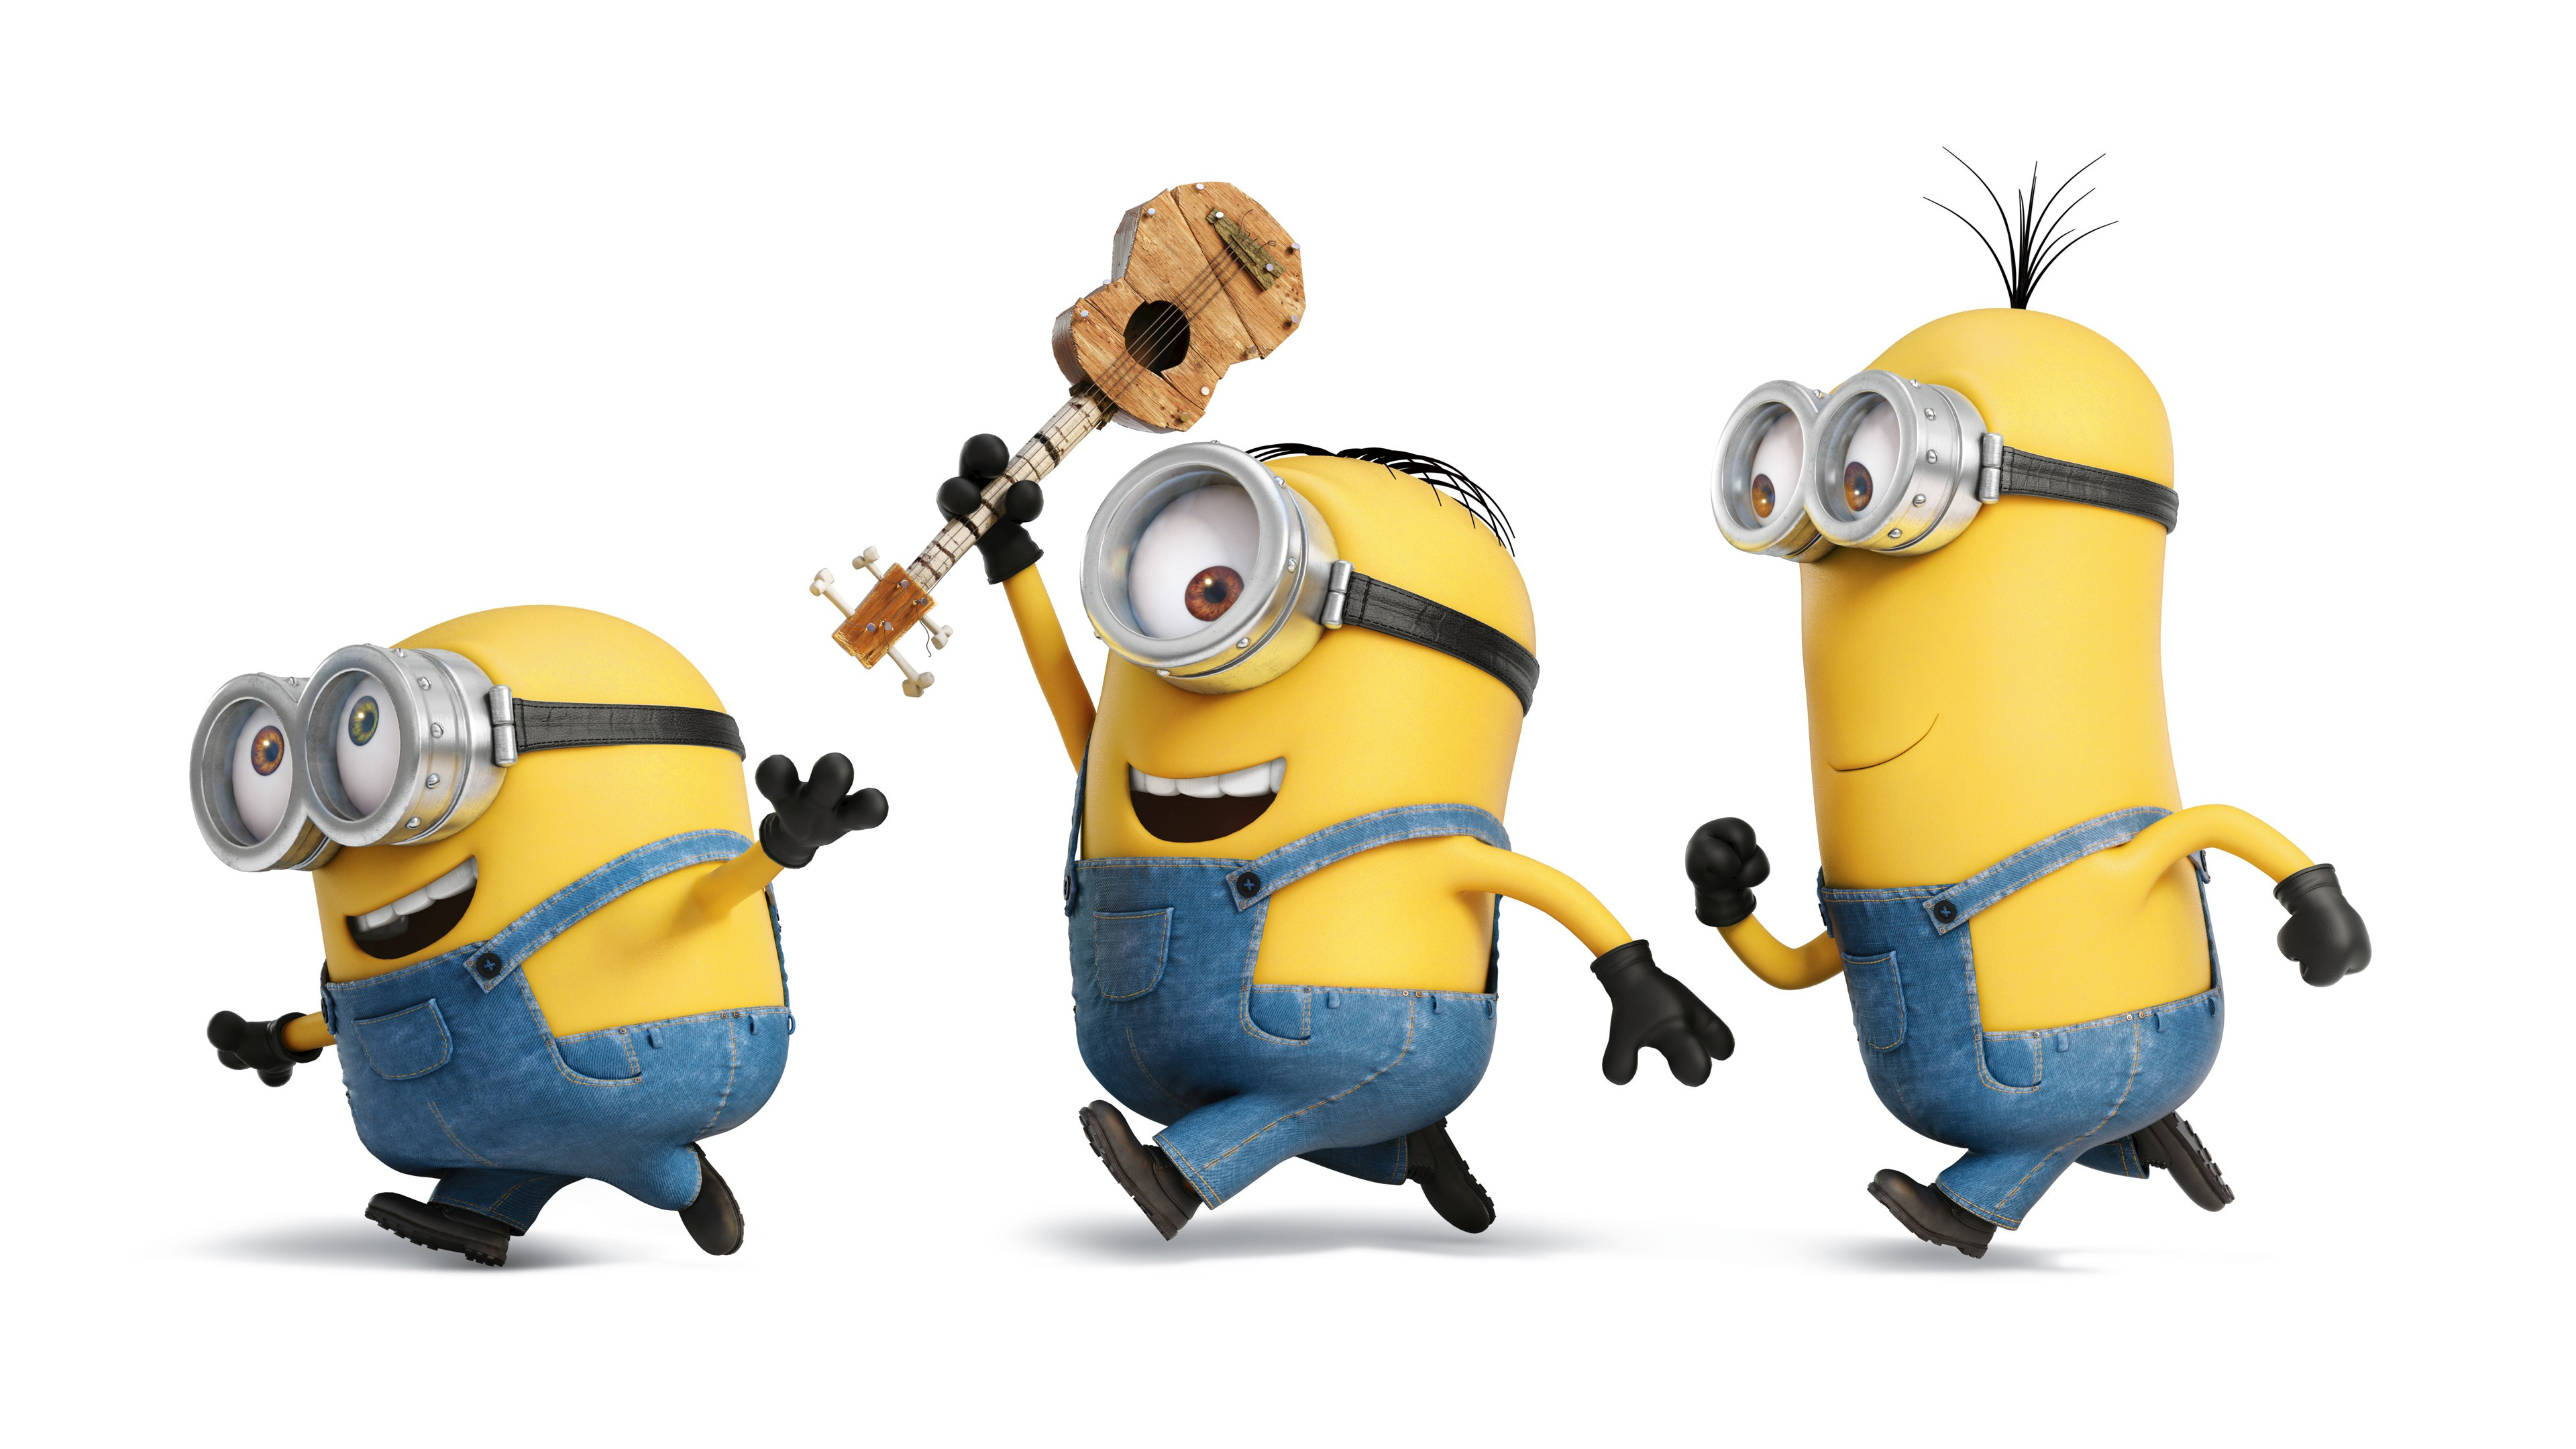 Prison Break Hd Wallpapers Download Minions Funny 2 Hd Cartoons 4k Wallpapers Images